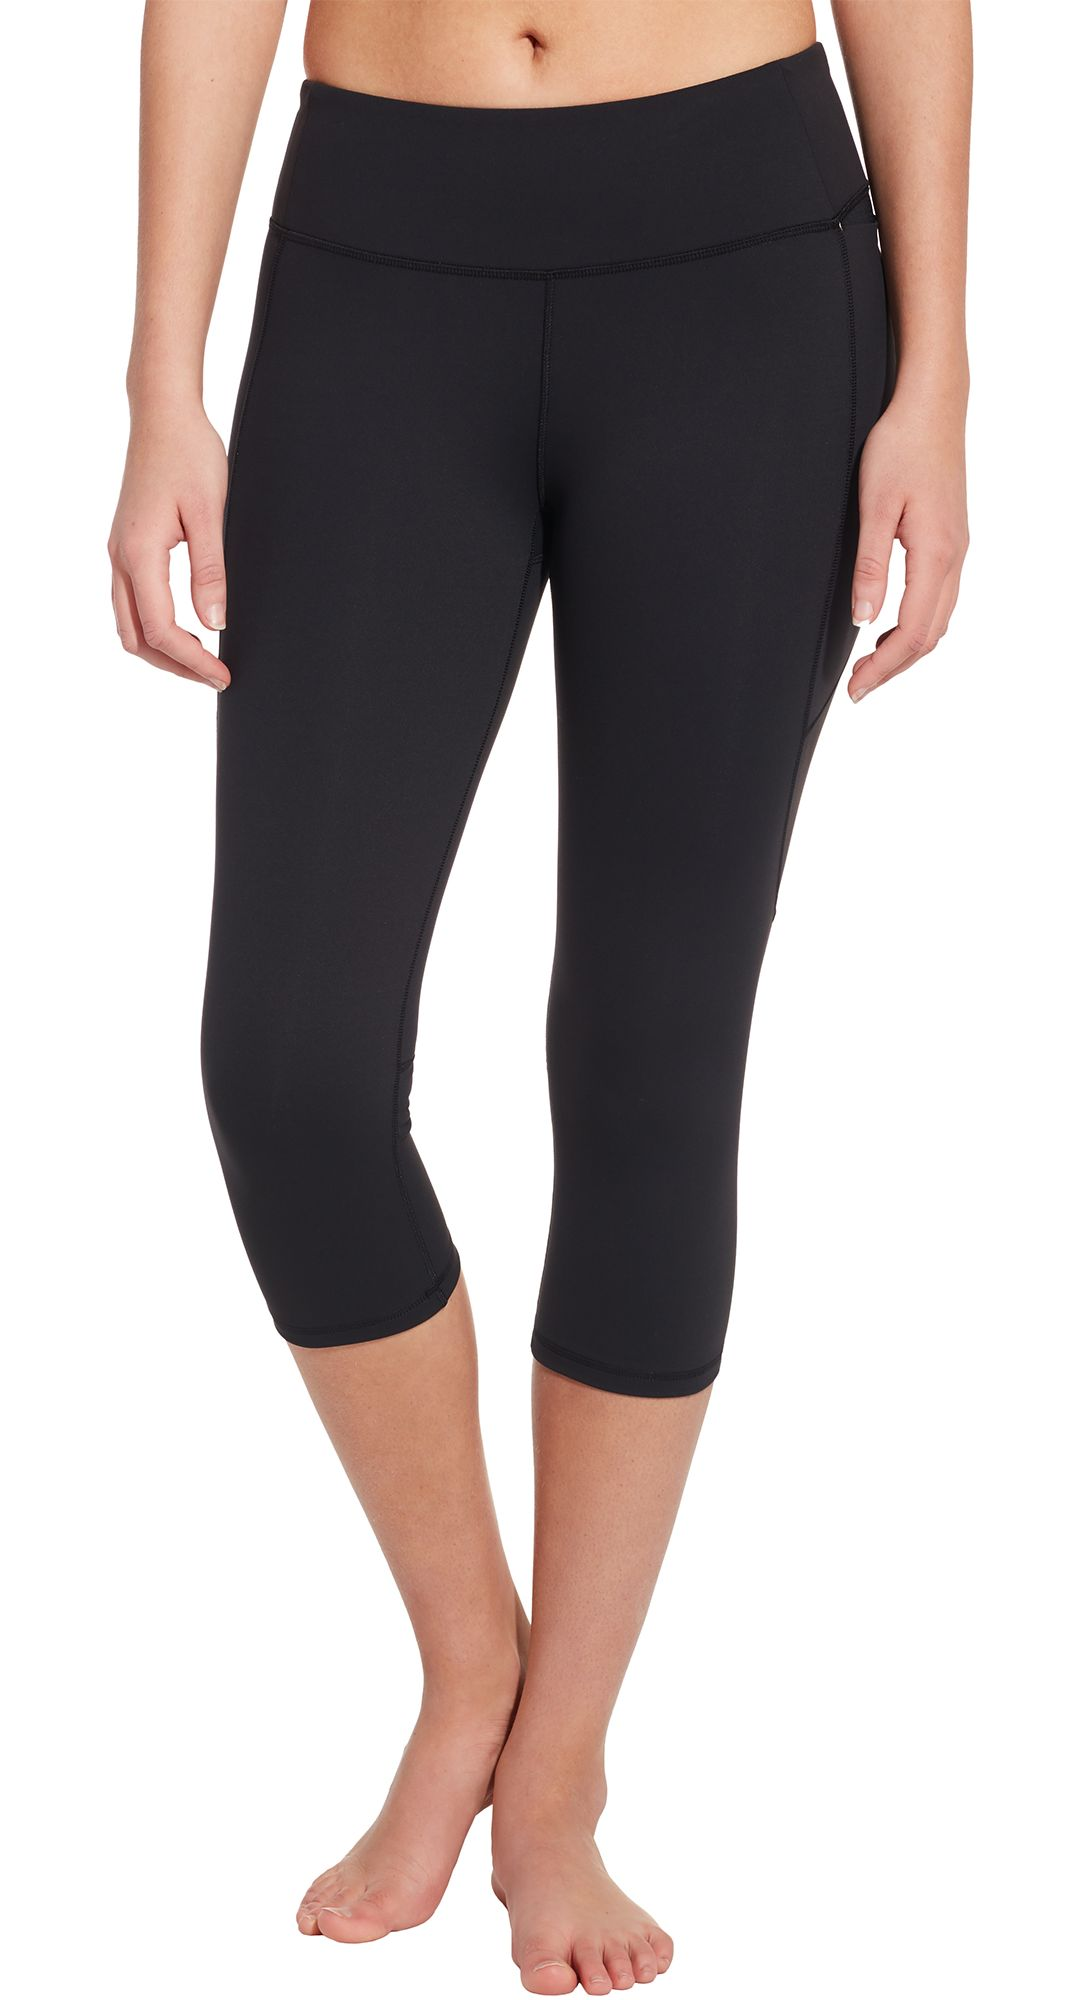 7d360ce27a034 CALIA by Carrie Underwood Women's Energize Crop Tights | DICK'S ...